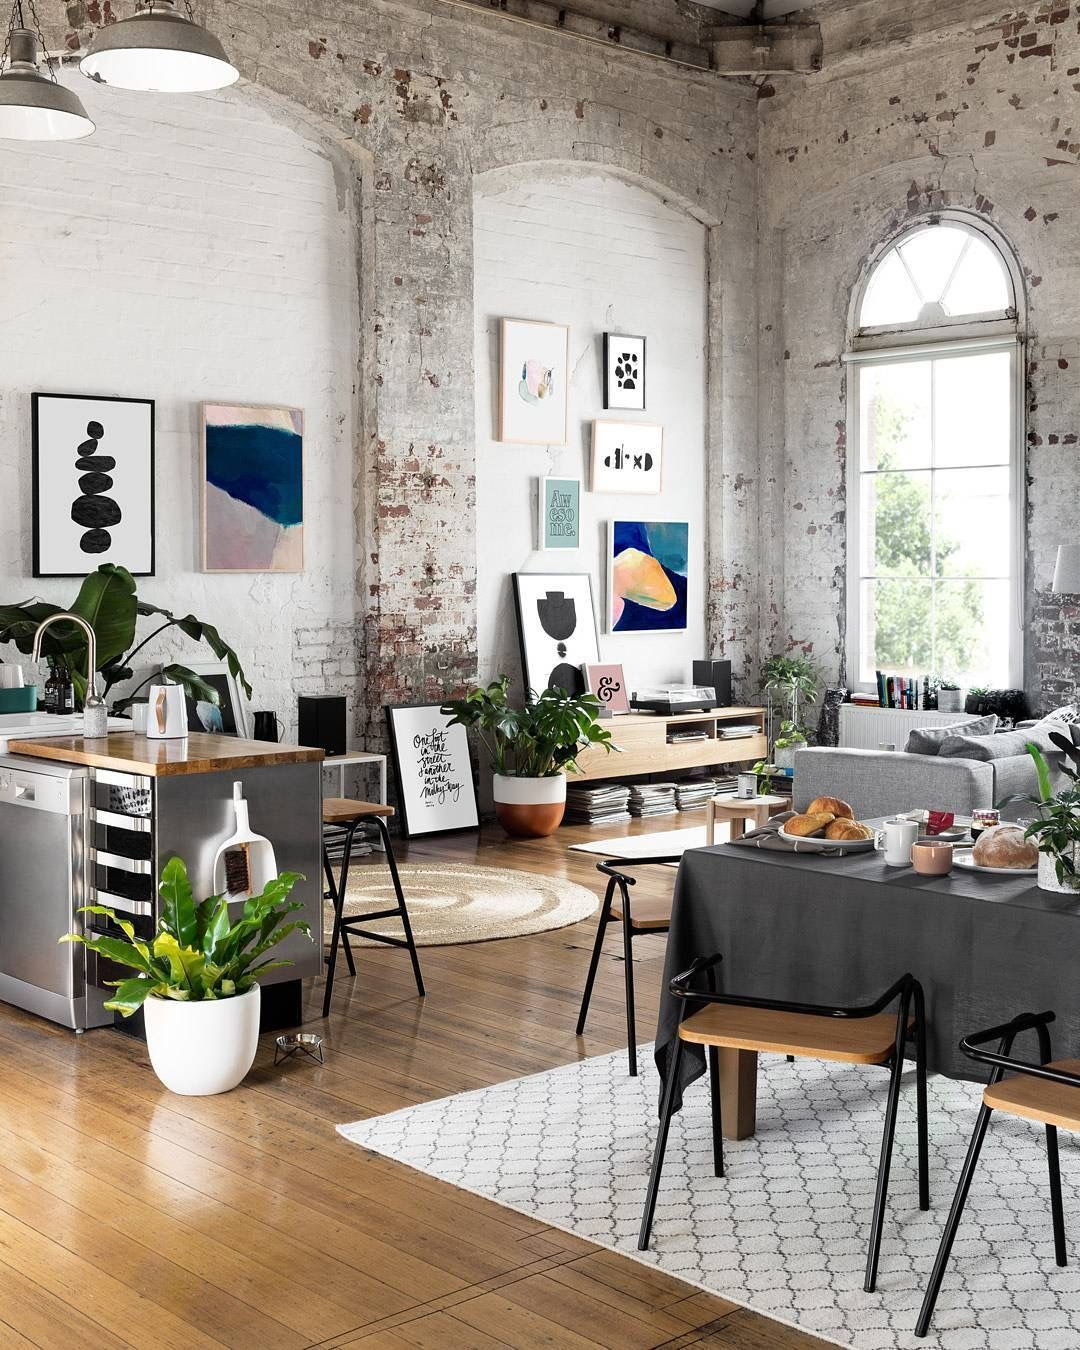 Modern Industrial Style Combines Aesthetics With: Exposed Brick Walls, Arches, Great Lighting, And Lots Of